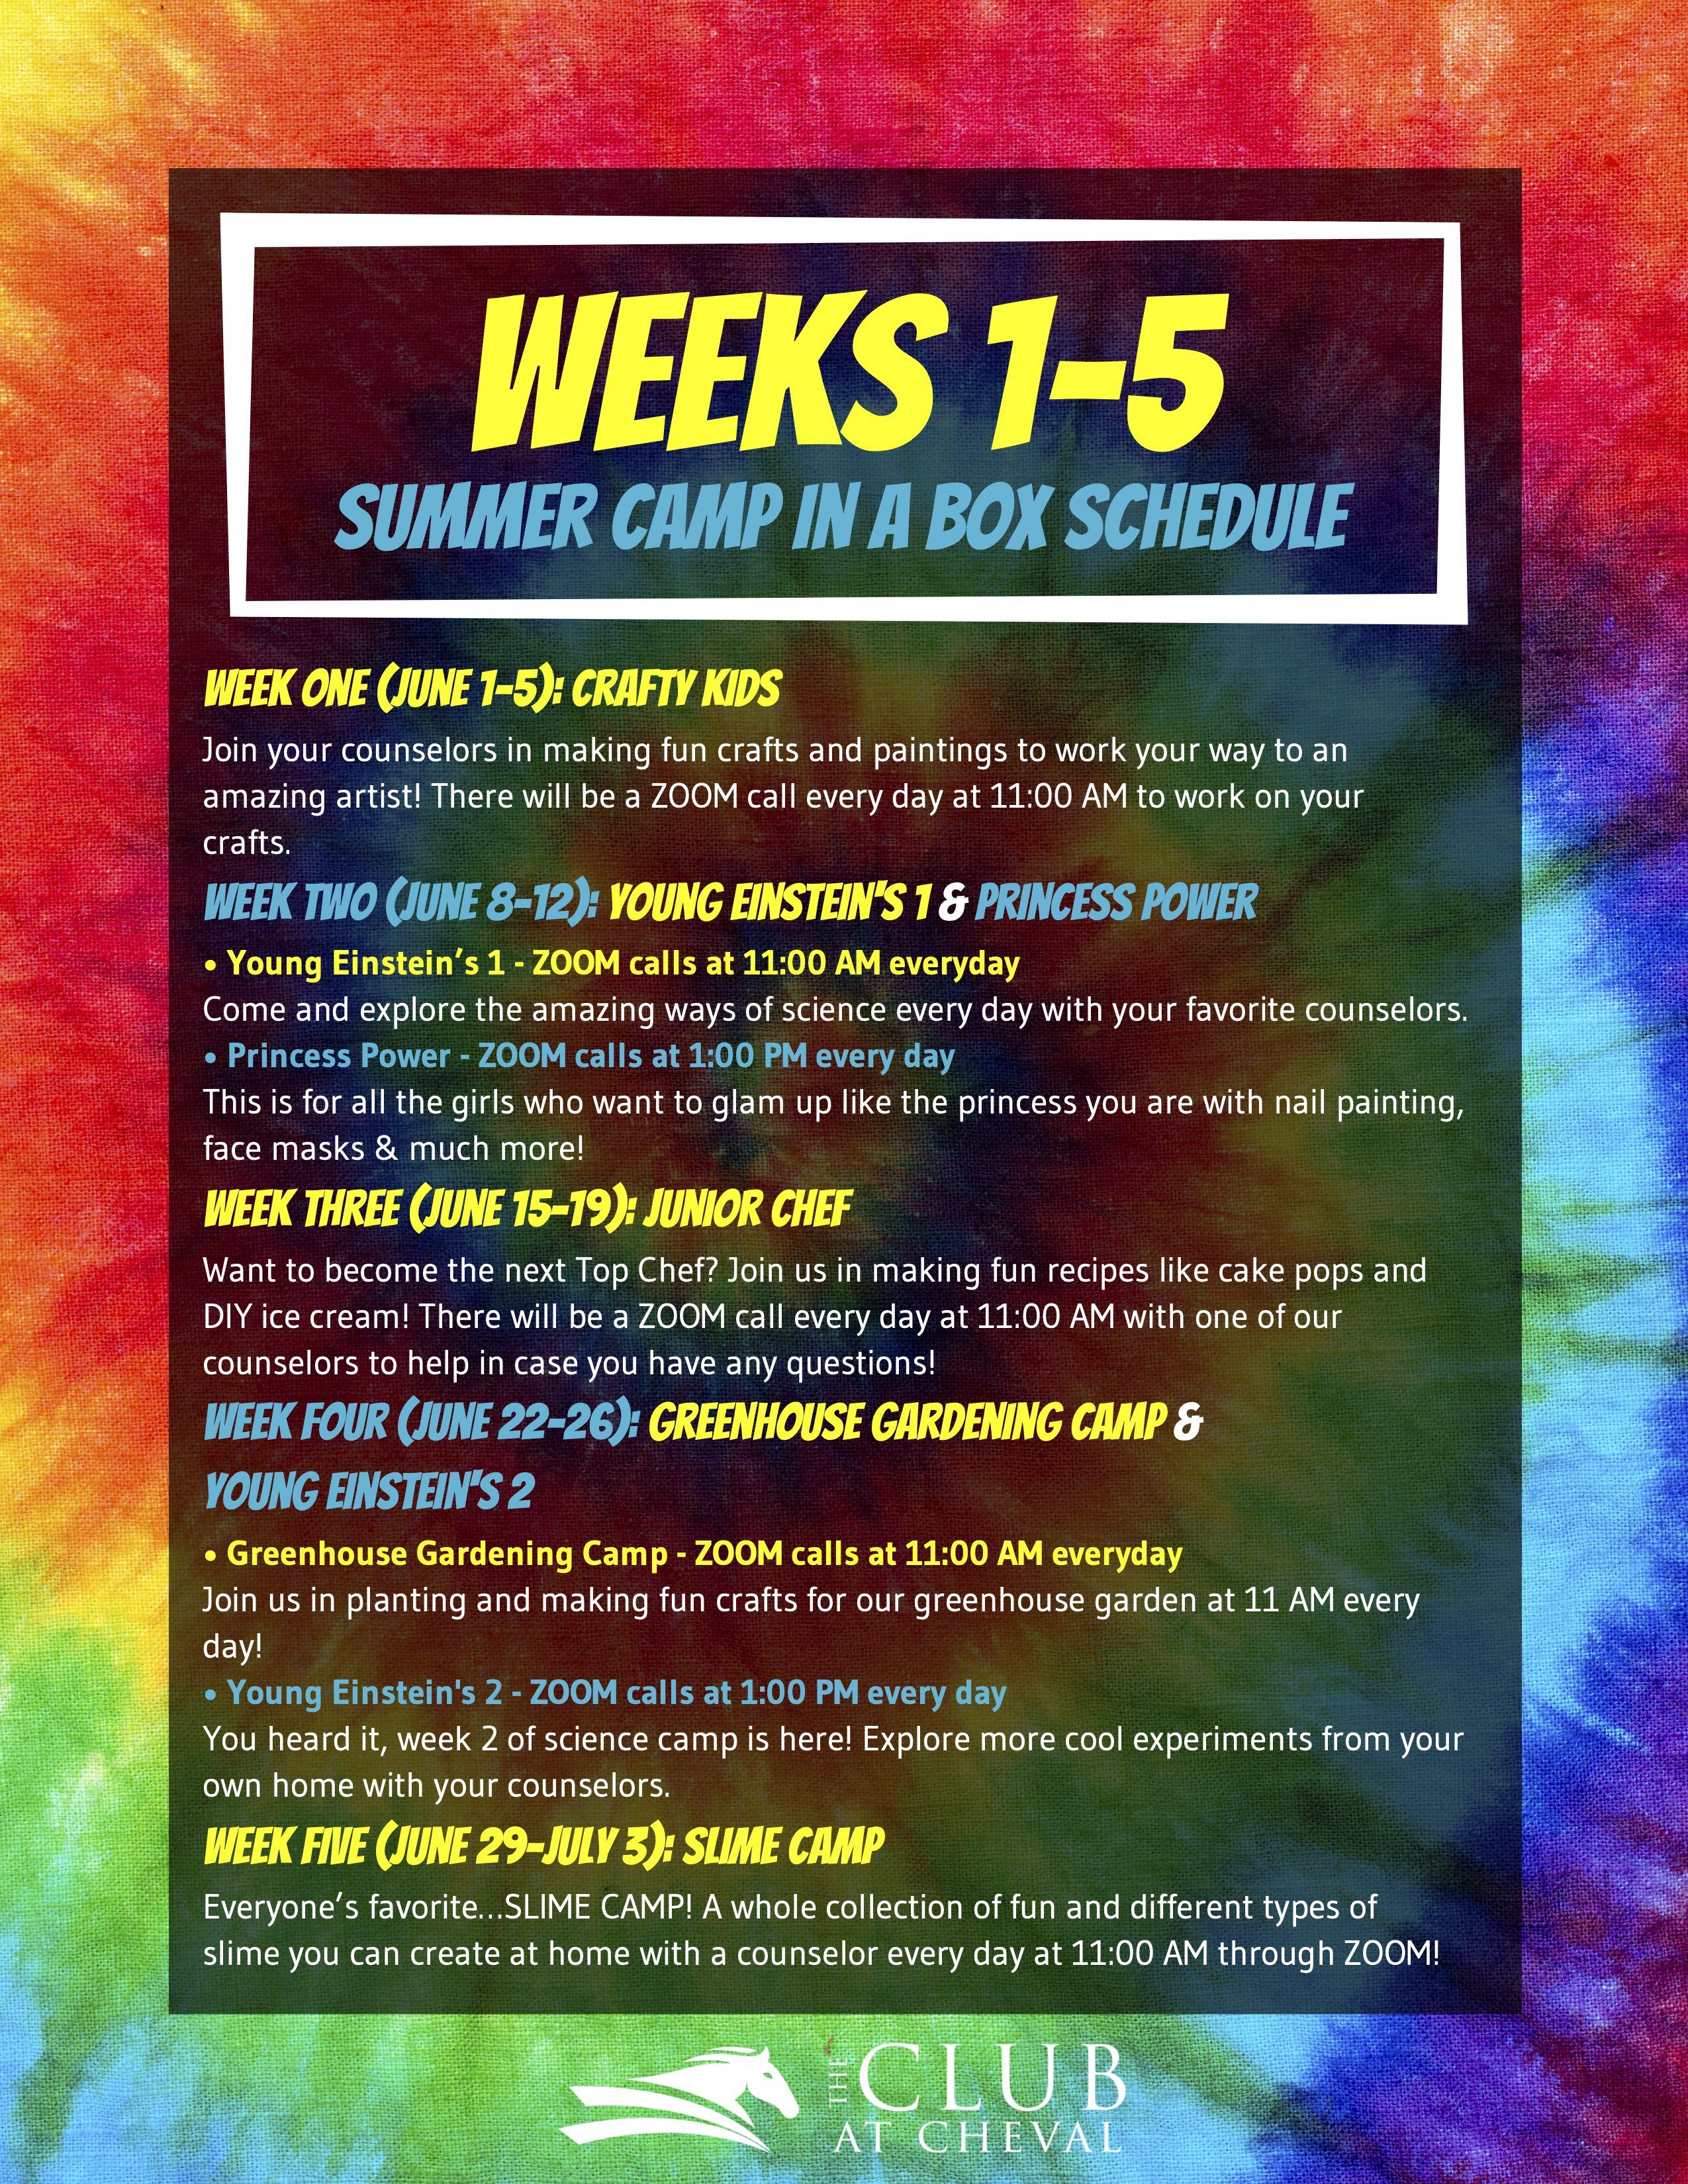 Summer Camp In A Box Cheval Tampa Lutz Kids Youth